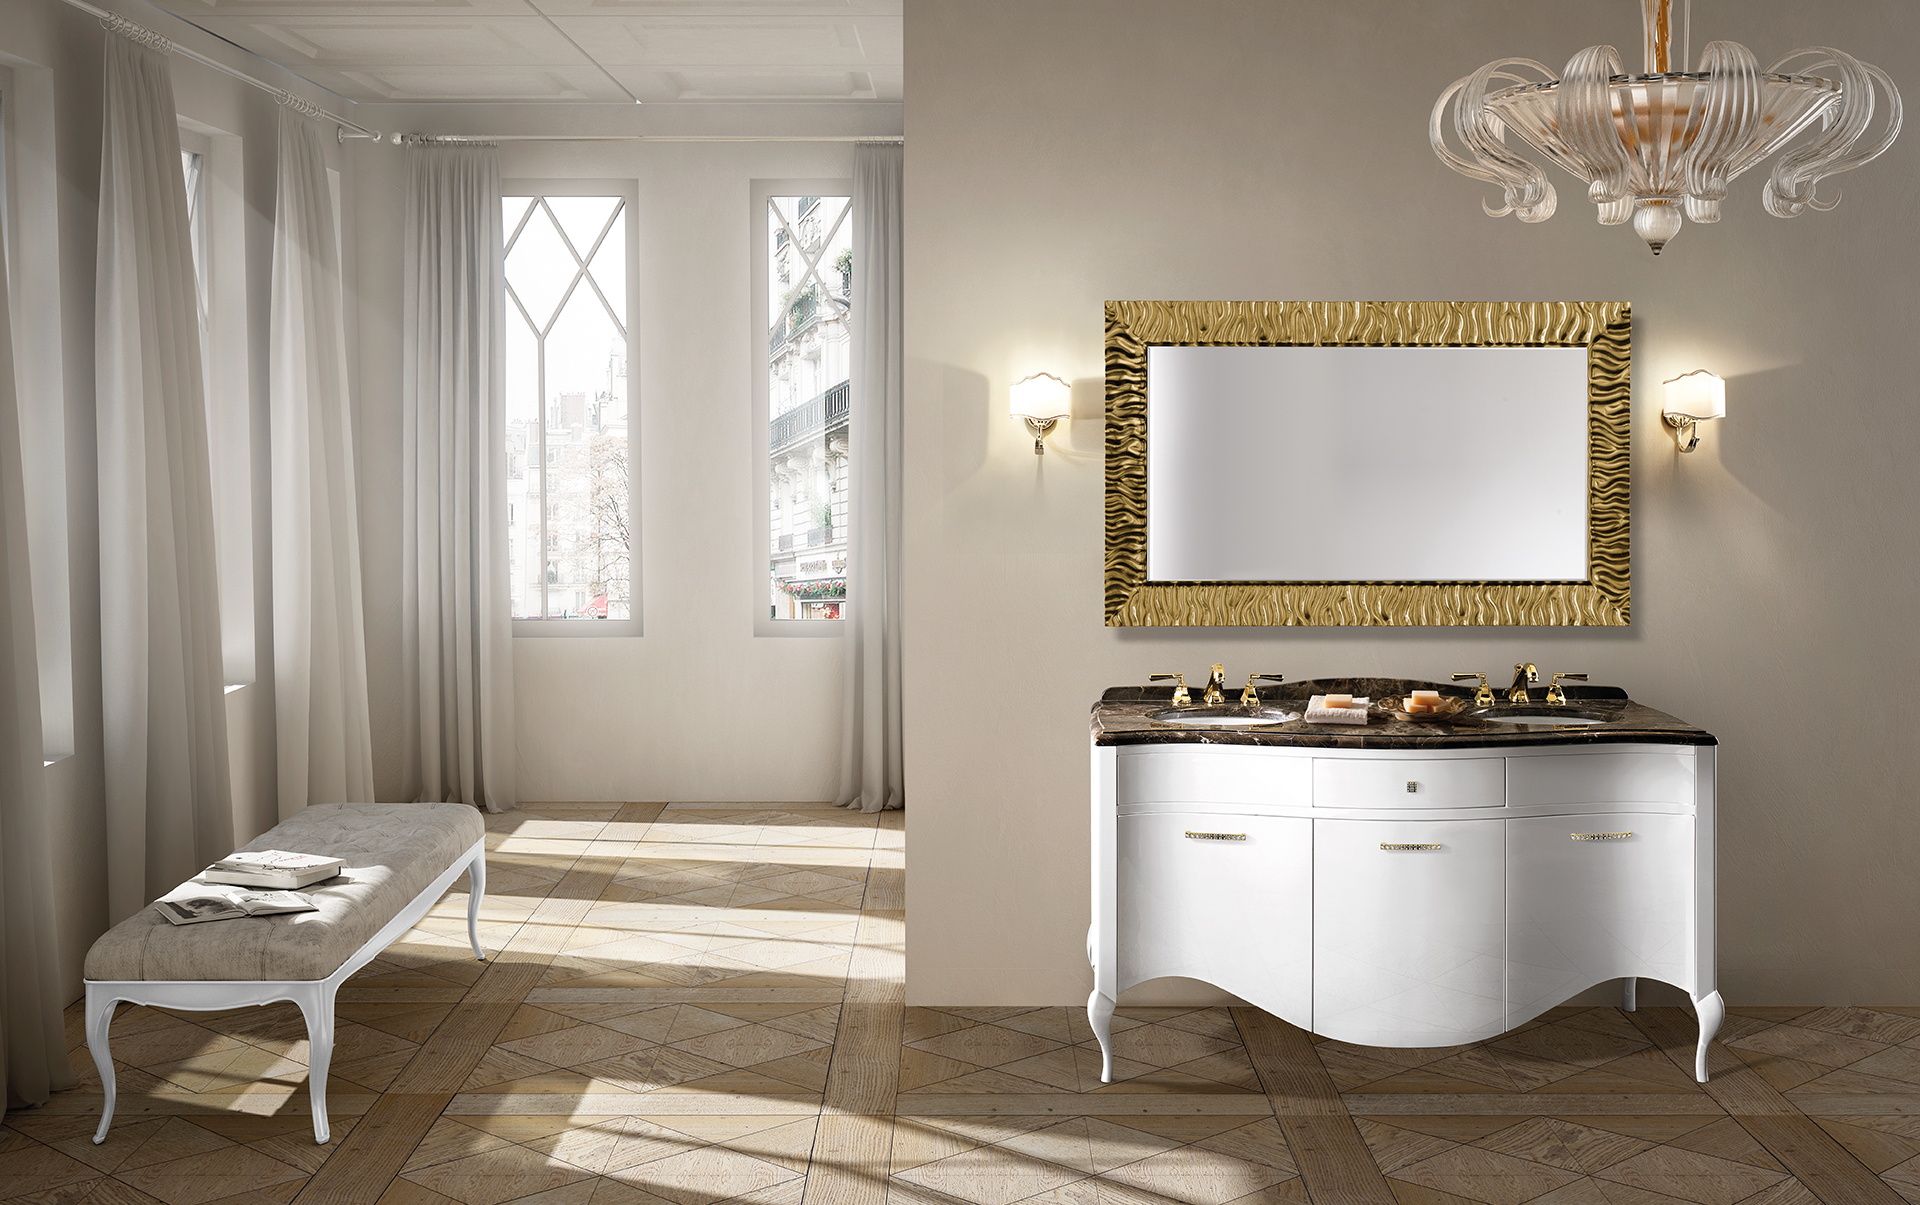 Classic and traditional european bathroom vanities in kitchen and ...